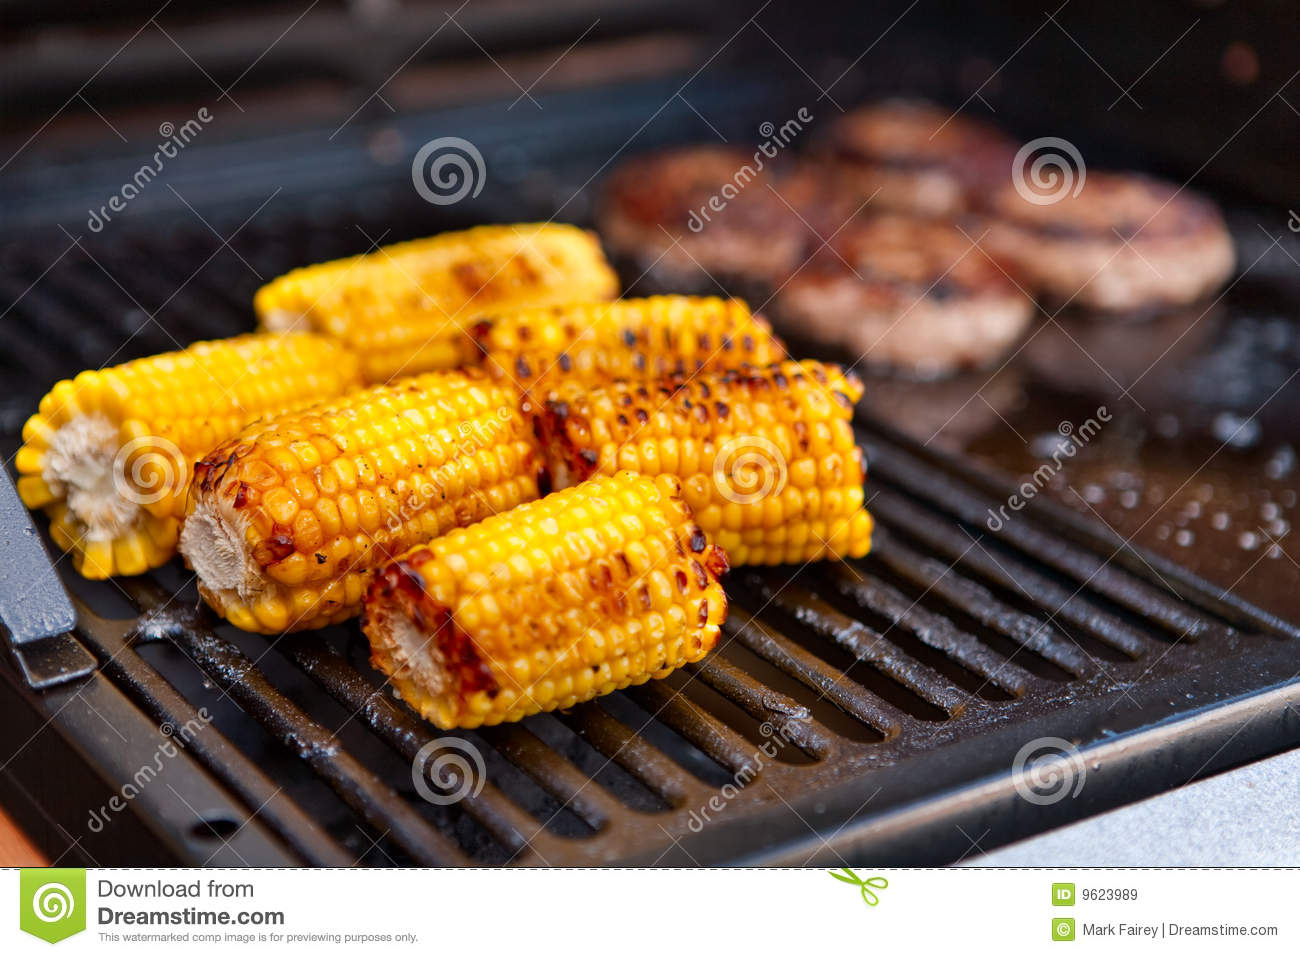 sweetcorn cooking on a barbecue royalty free stock images. Black Bedroom Furniture Sets. Home Design Ideas